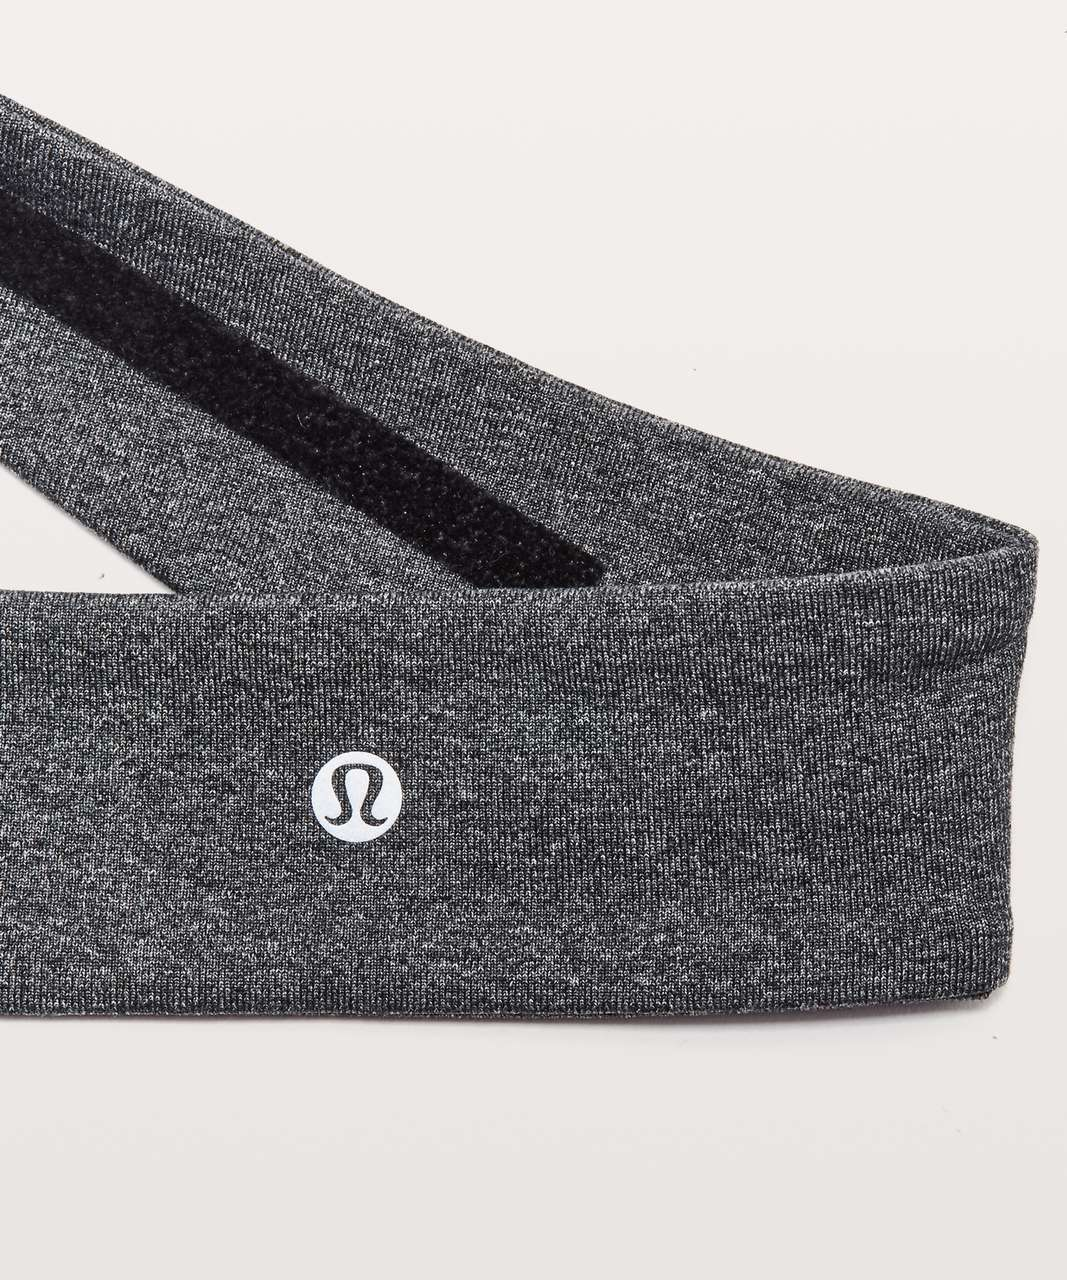 Lululemon Fly Away Tamer Headband II - Heathered Black